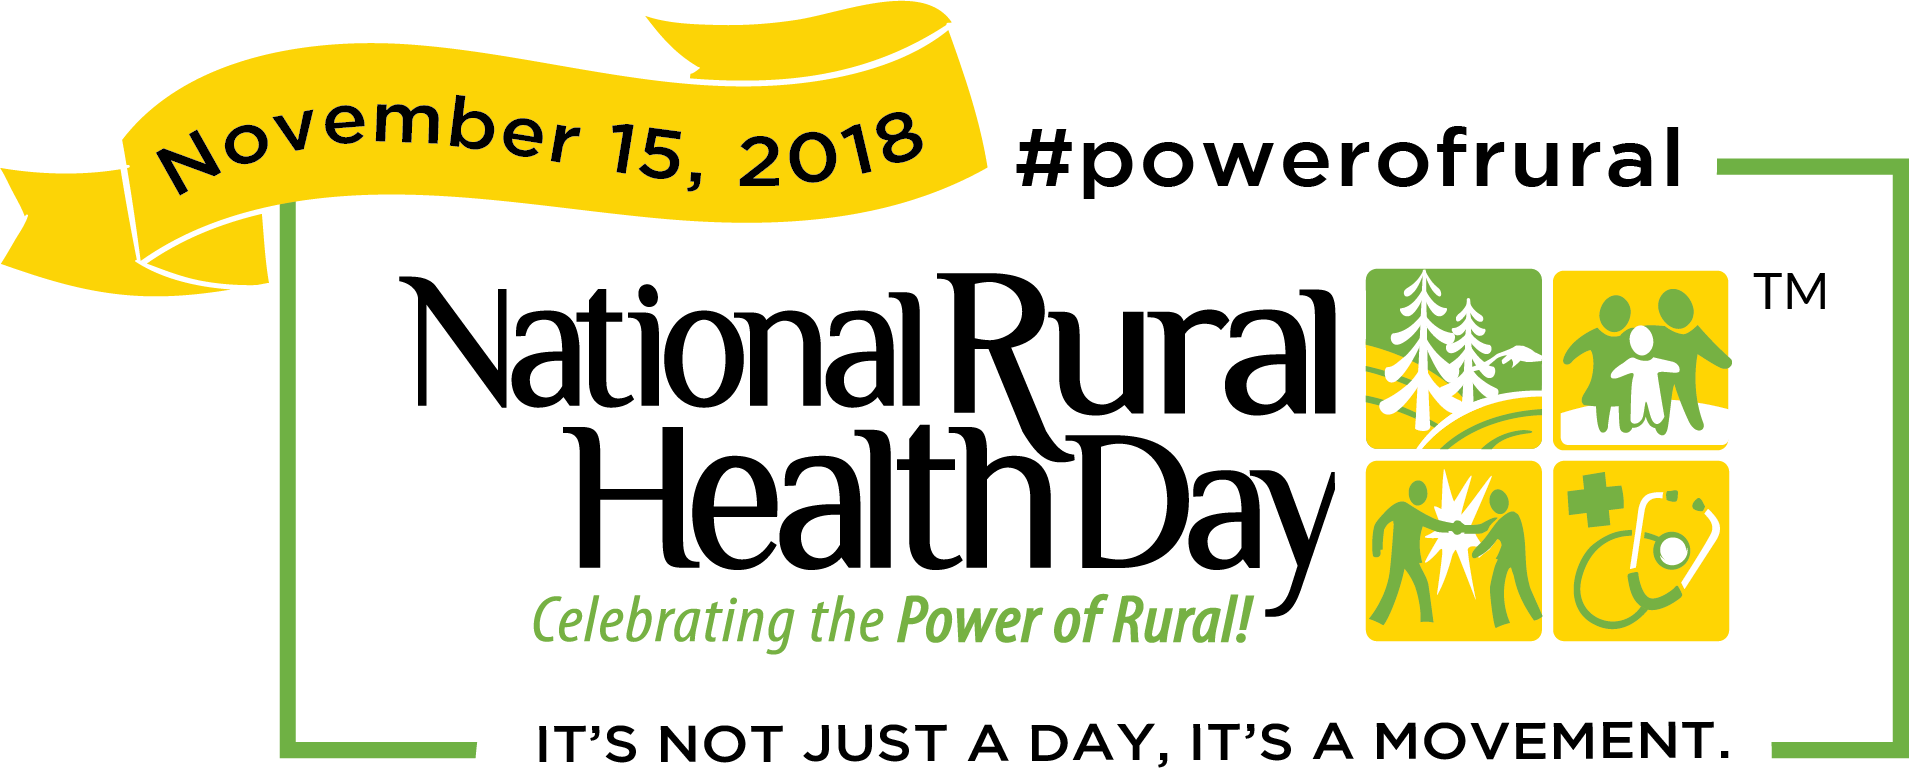 November 15, 2018 is National Rural Health Day